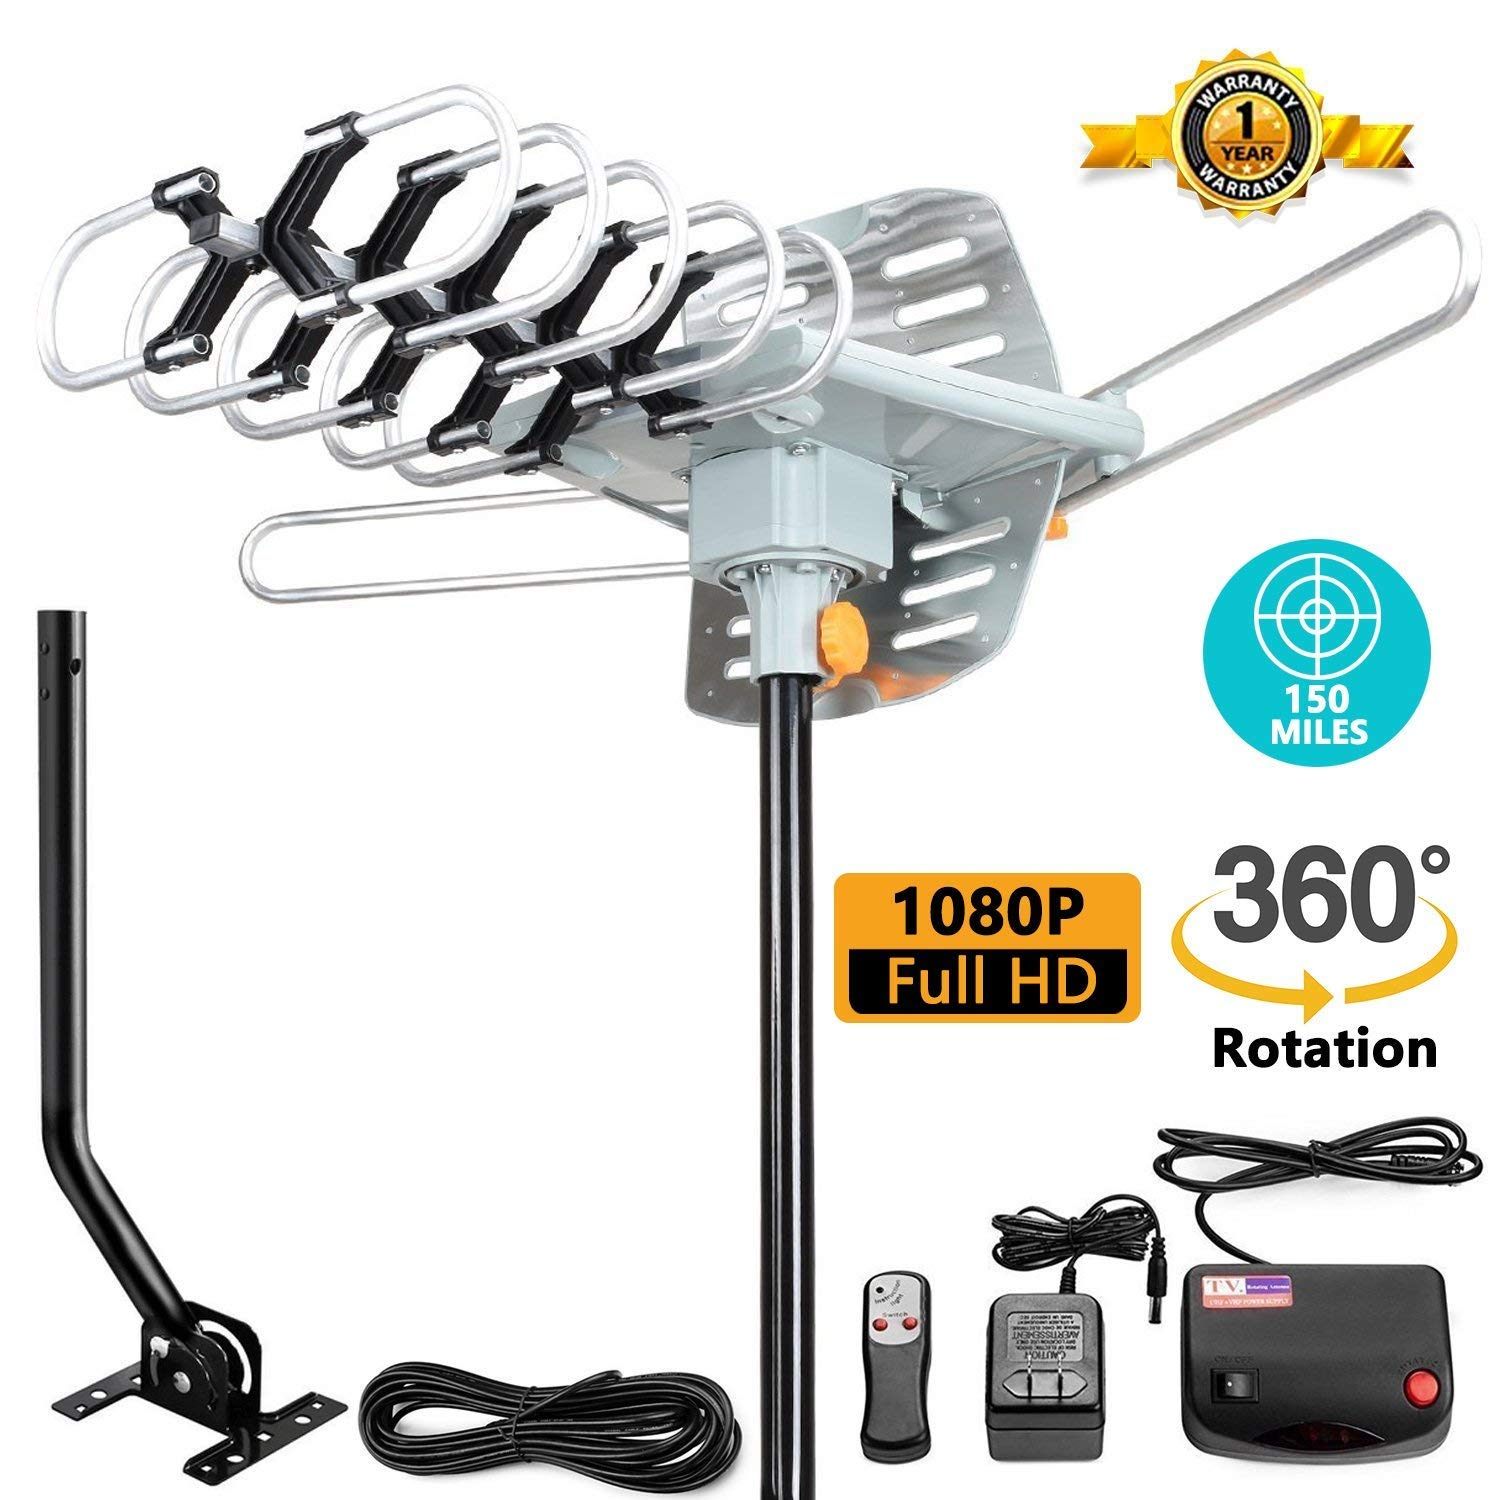 TV Antenna -Outdoor Amplified HDTV Antenna 150 Mile Motorized Adjustable Antenna Mount Pole 2 TVs Support - UHF/VHF 4K 1080P Channels Wireless Remote Control - 33FT Coax Cable … by MATIS